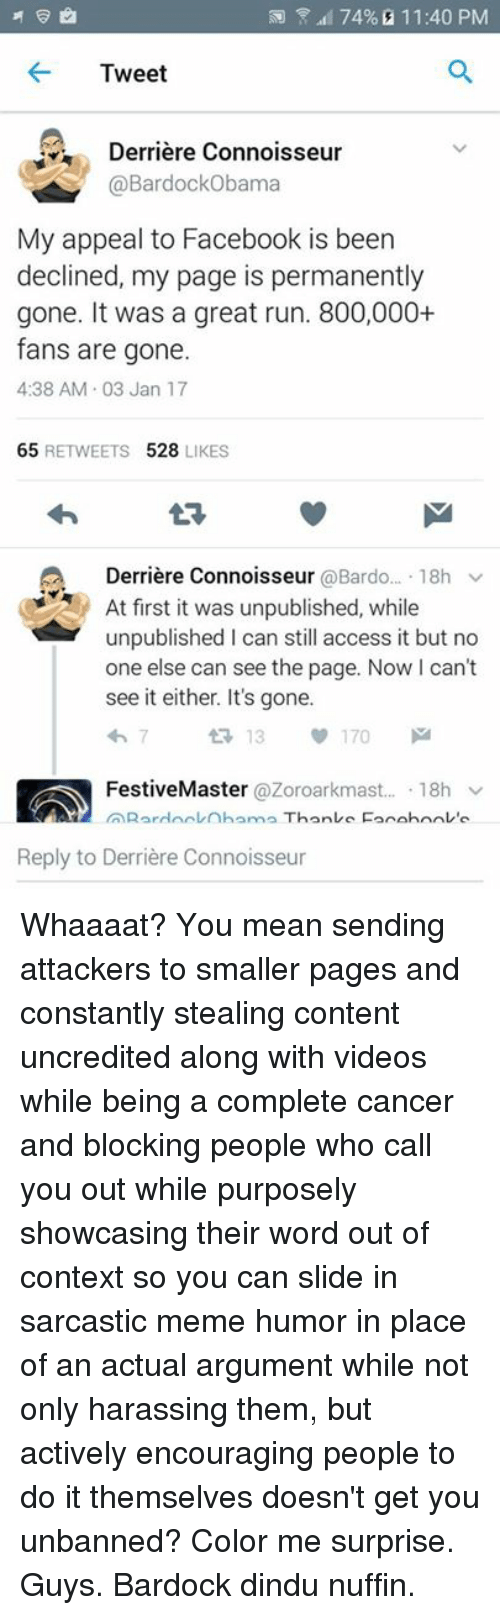 Sarcastic Meme: 74% 11:40 PM  Tweet  Derriere Connoisseur  @Bar ama  My appeal to Facebook is been  declined, my page is permanently  gone. It was a great run. 800,000+  fans are gone.  4:38 AM 03 Jan 17  65  RETWEETS  528  LIKES  A Derriere Connoisseur  @Bardo  18h v  At first it was unpublished, while  unpublished l can still access it but no  one else can see the page. Now I can't  see it either. It's gone.  t 13  v 170  Festive Master  @Zoroarkmast.  18h  v  Reply to Derriere Connoisseur Whaaaat? You mean sending attackers to smaller pages and constantly stealing content uncredited along with videos while being a complete cancer and blocking people who call you out while purposely showcasing their word out of context so you can slide in sarcastic meme humor in place of an actual argument while not only harassing them, but actively encouraging people to do it themselves doesn't get you unbanned? Color me surprise. Guys. Bardock dindu nuffin.